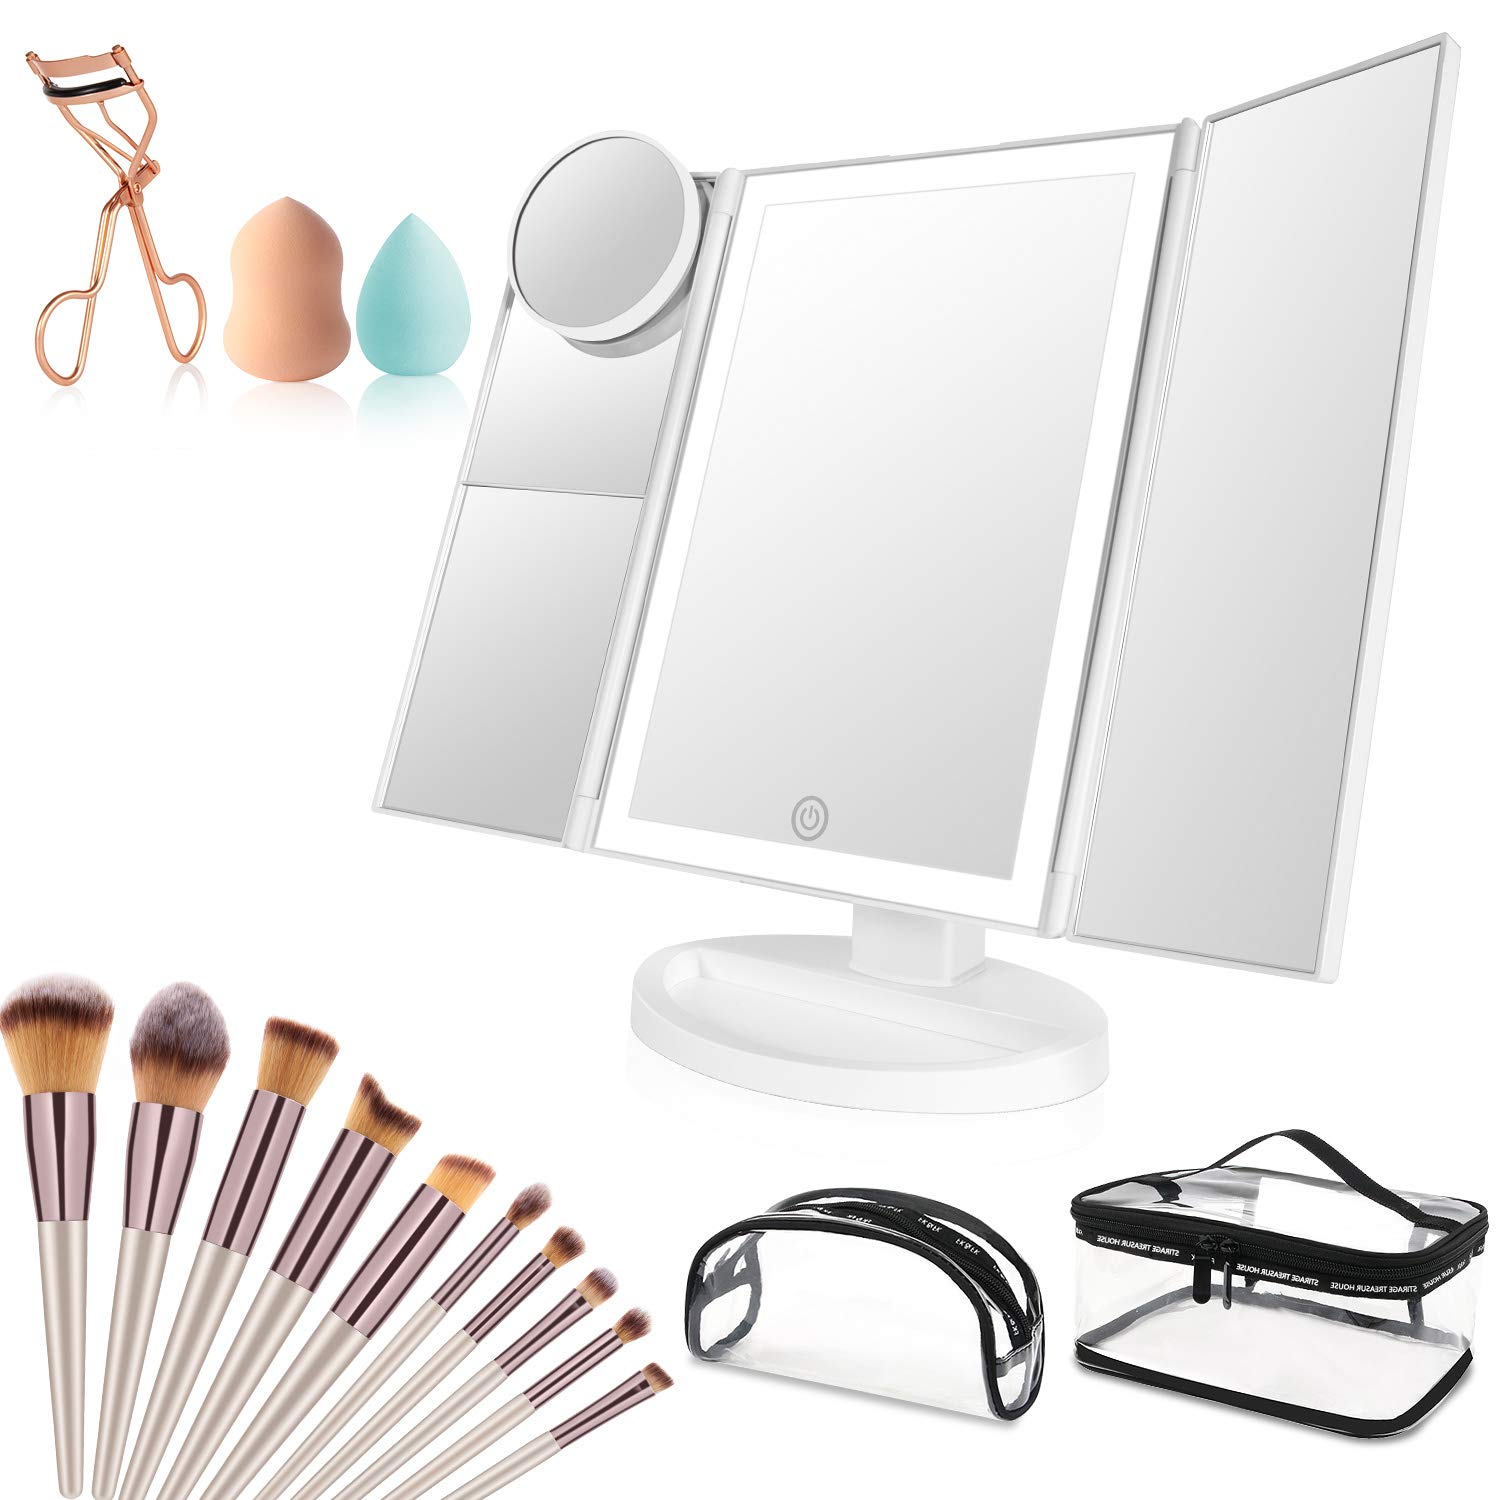 Makeup Vanity Mirror with Lights, 36 LED Trifold Cosmetic Makeup Mirror, 2x 3x 10x Magnification 180° Rotation Dual Power Supply 10 Makeup Brushes Set 2 Makeup Sponges 2 Cosmetic Bags 1 Eyelash Curler